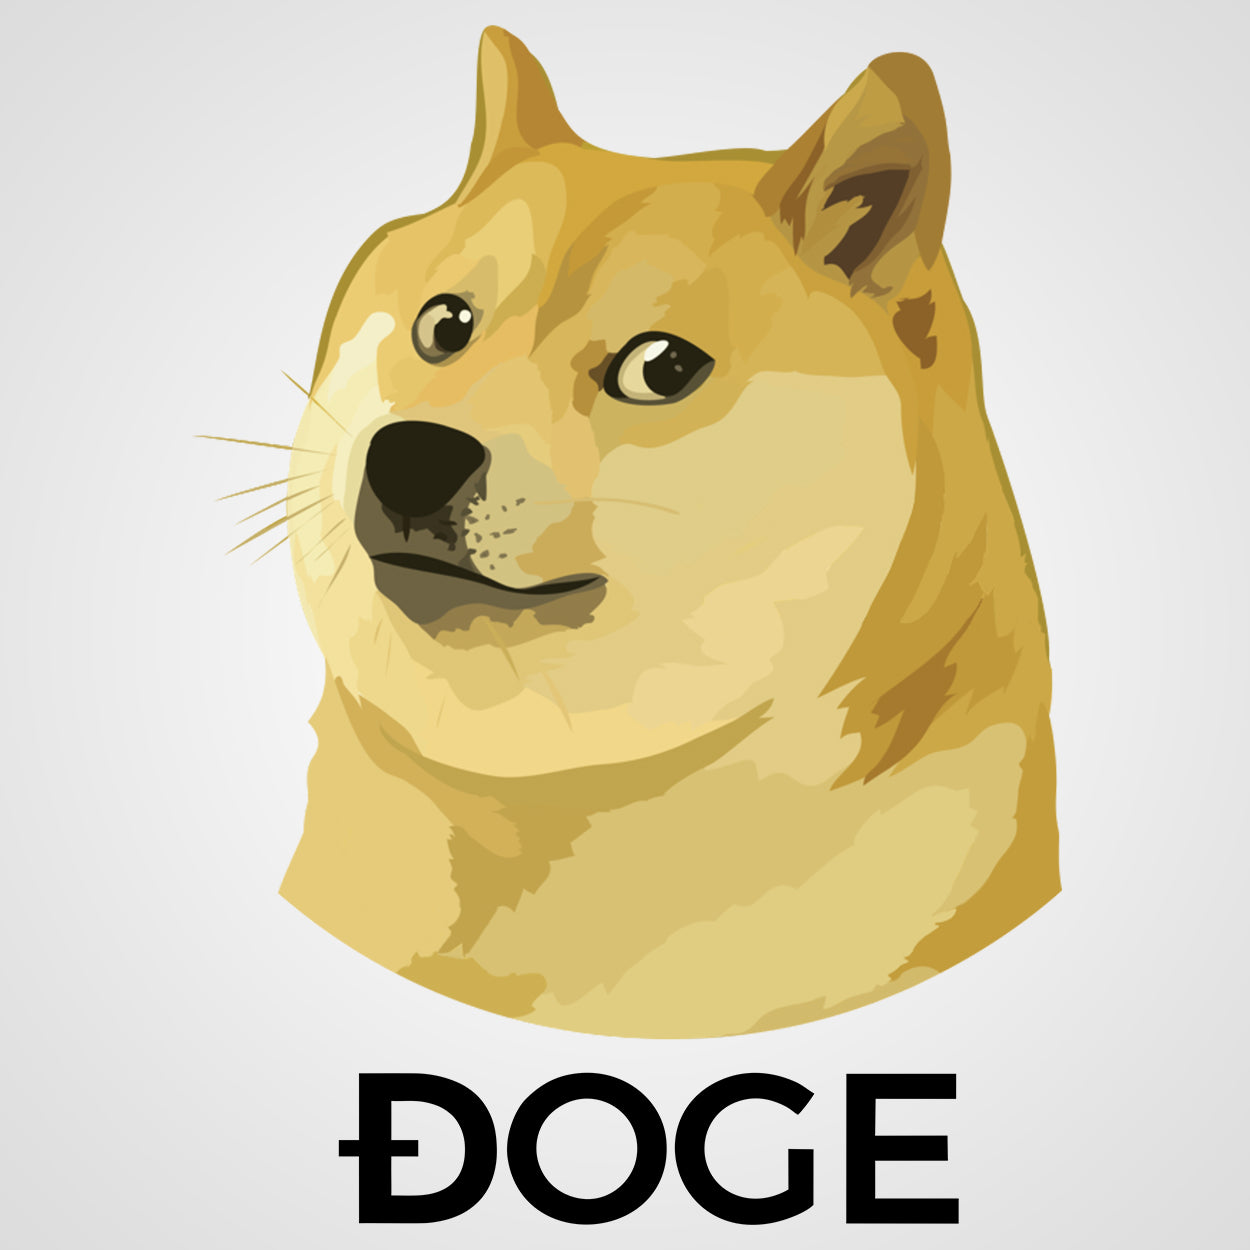 Doge Dog to the Moon